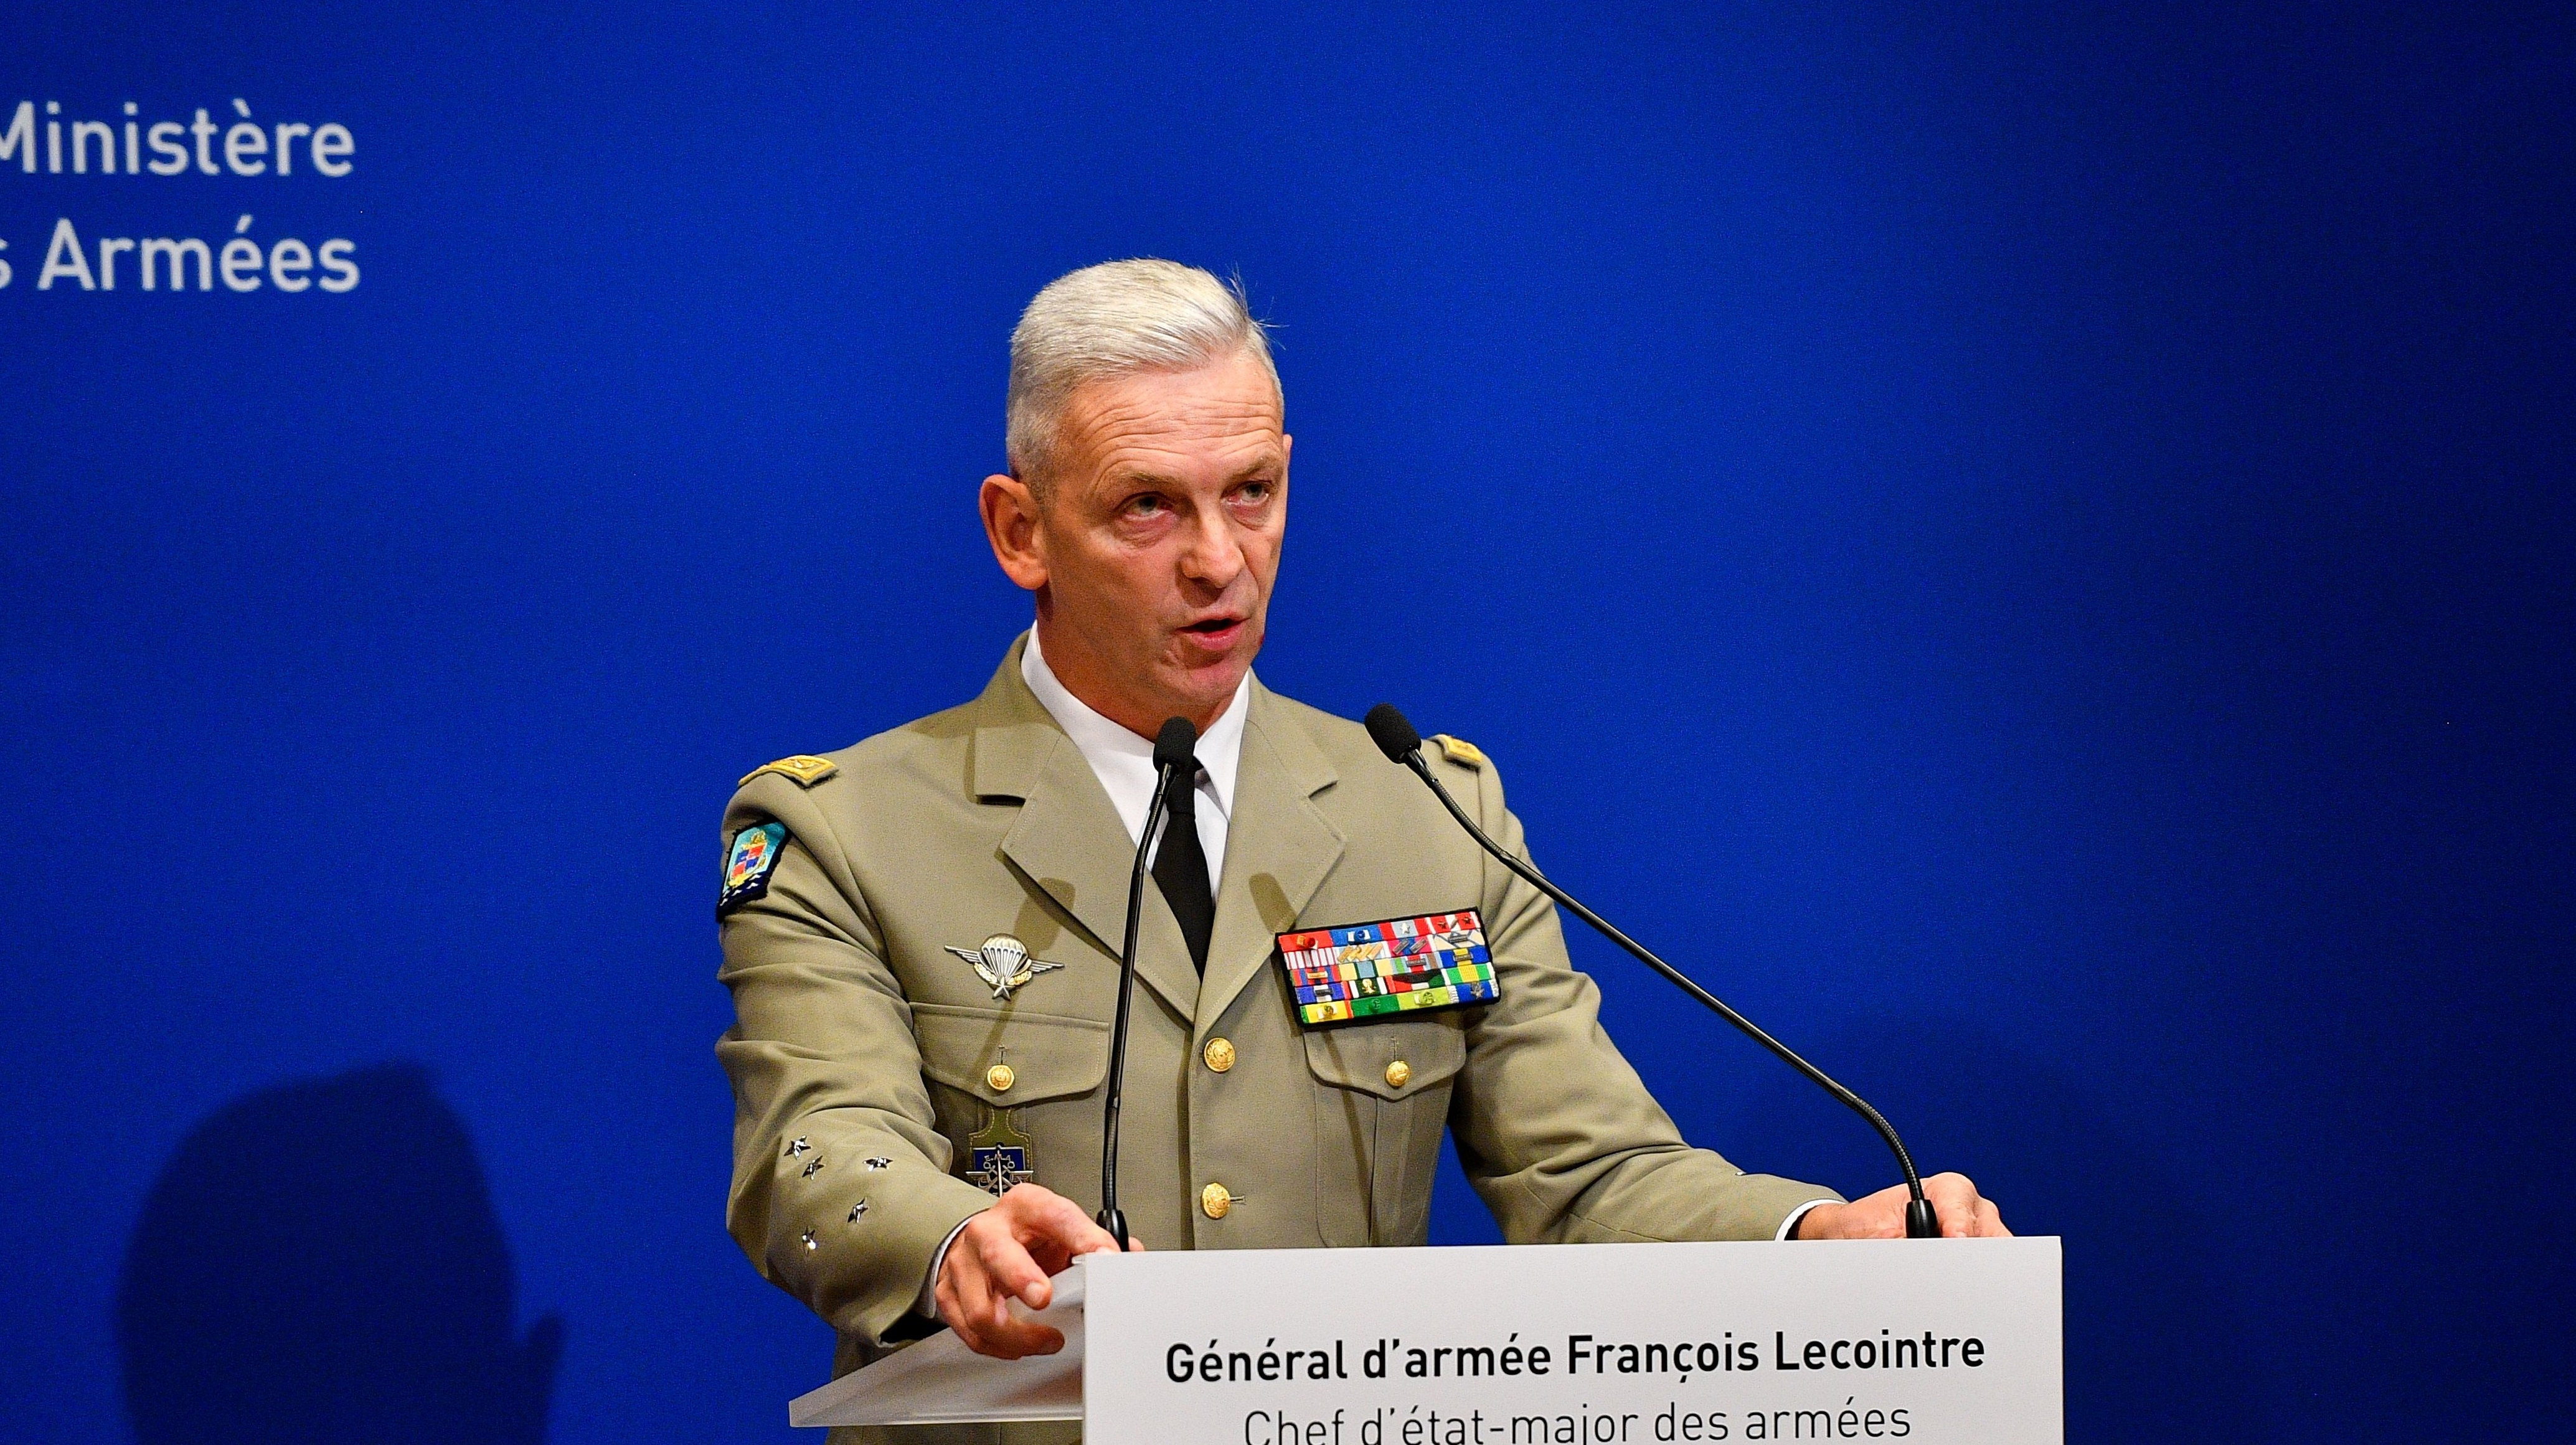 French army chief of staff, Francois Lecointre